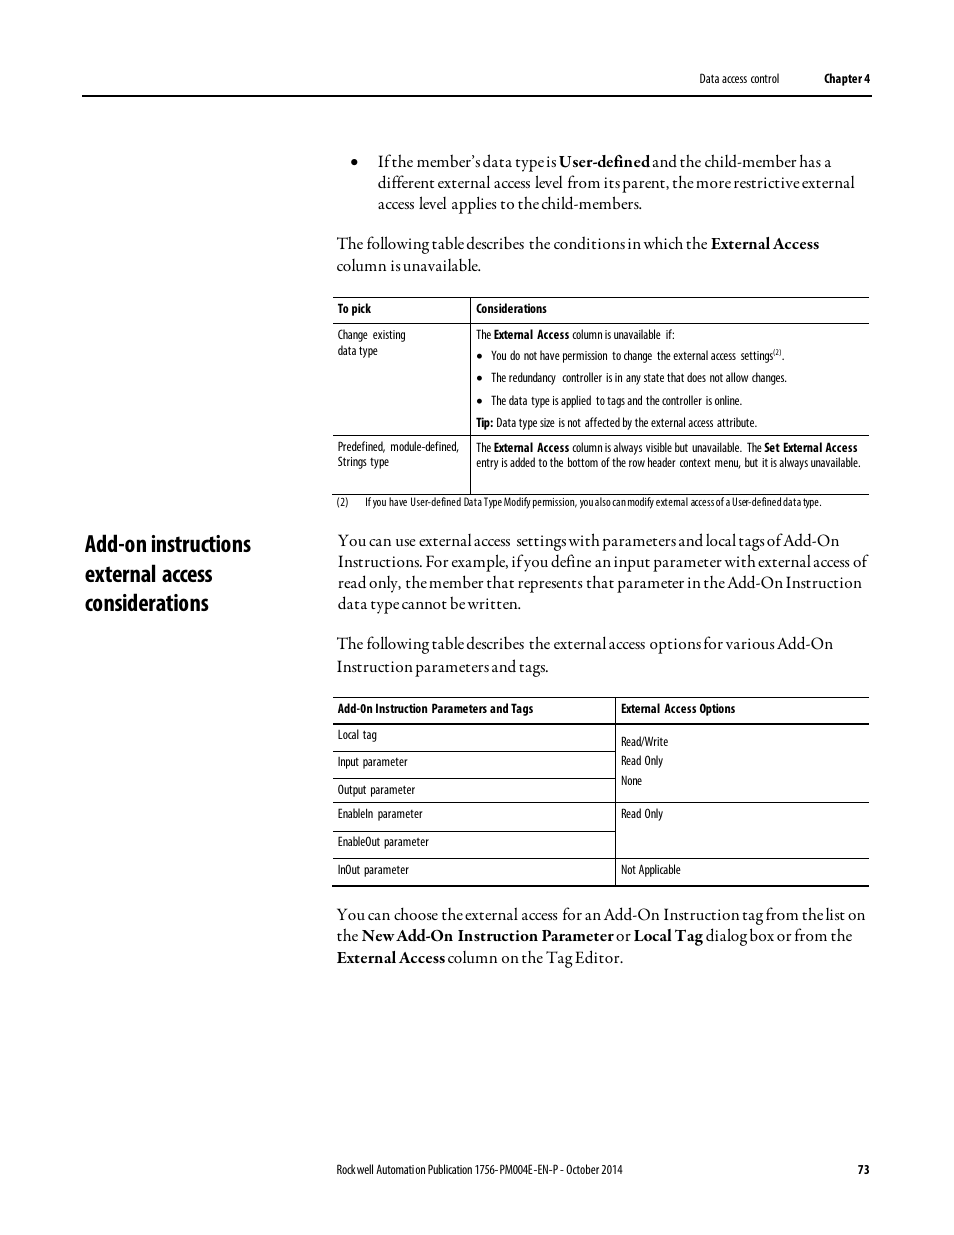 Add-on instructions external access considerations   Rockwell Automation Logix5000  Controllers I/O and Tag Data Programming Manual User Manual   Page 73 / ...